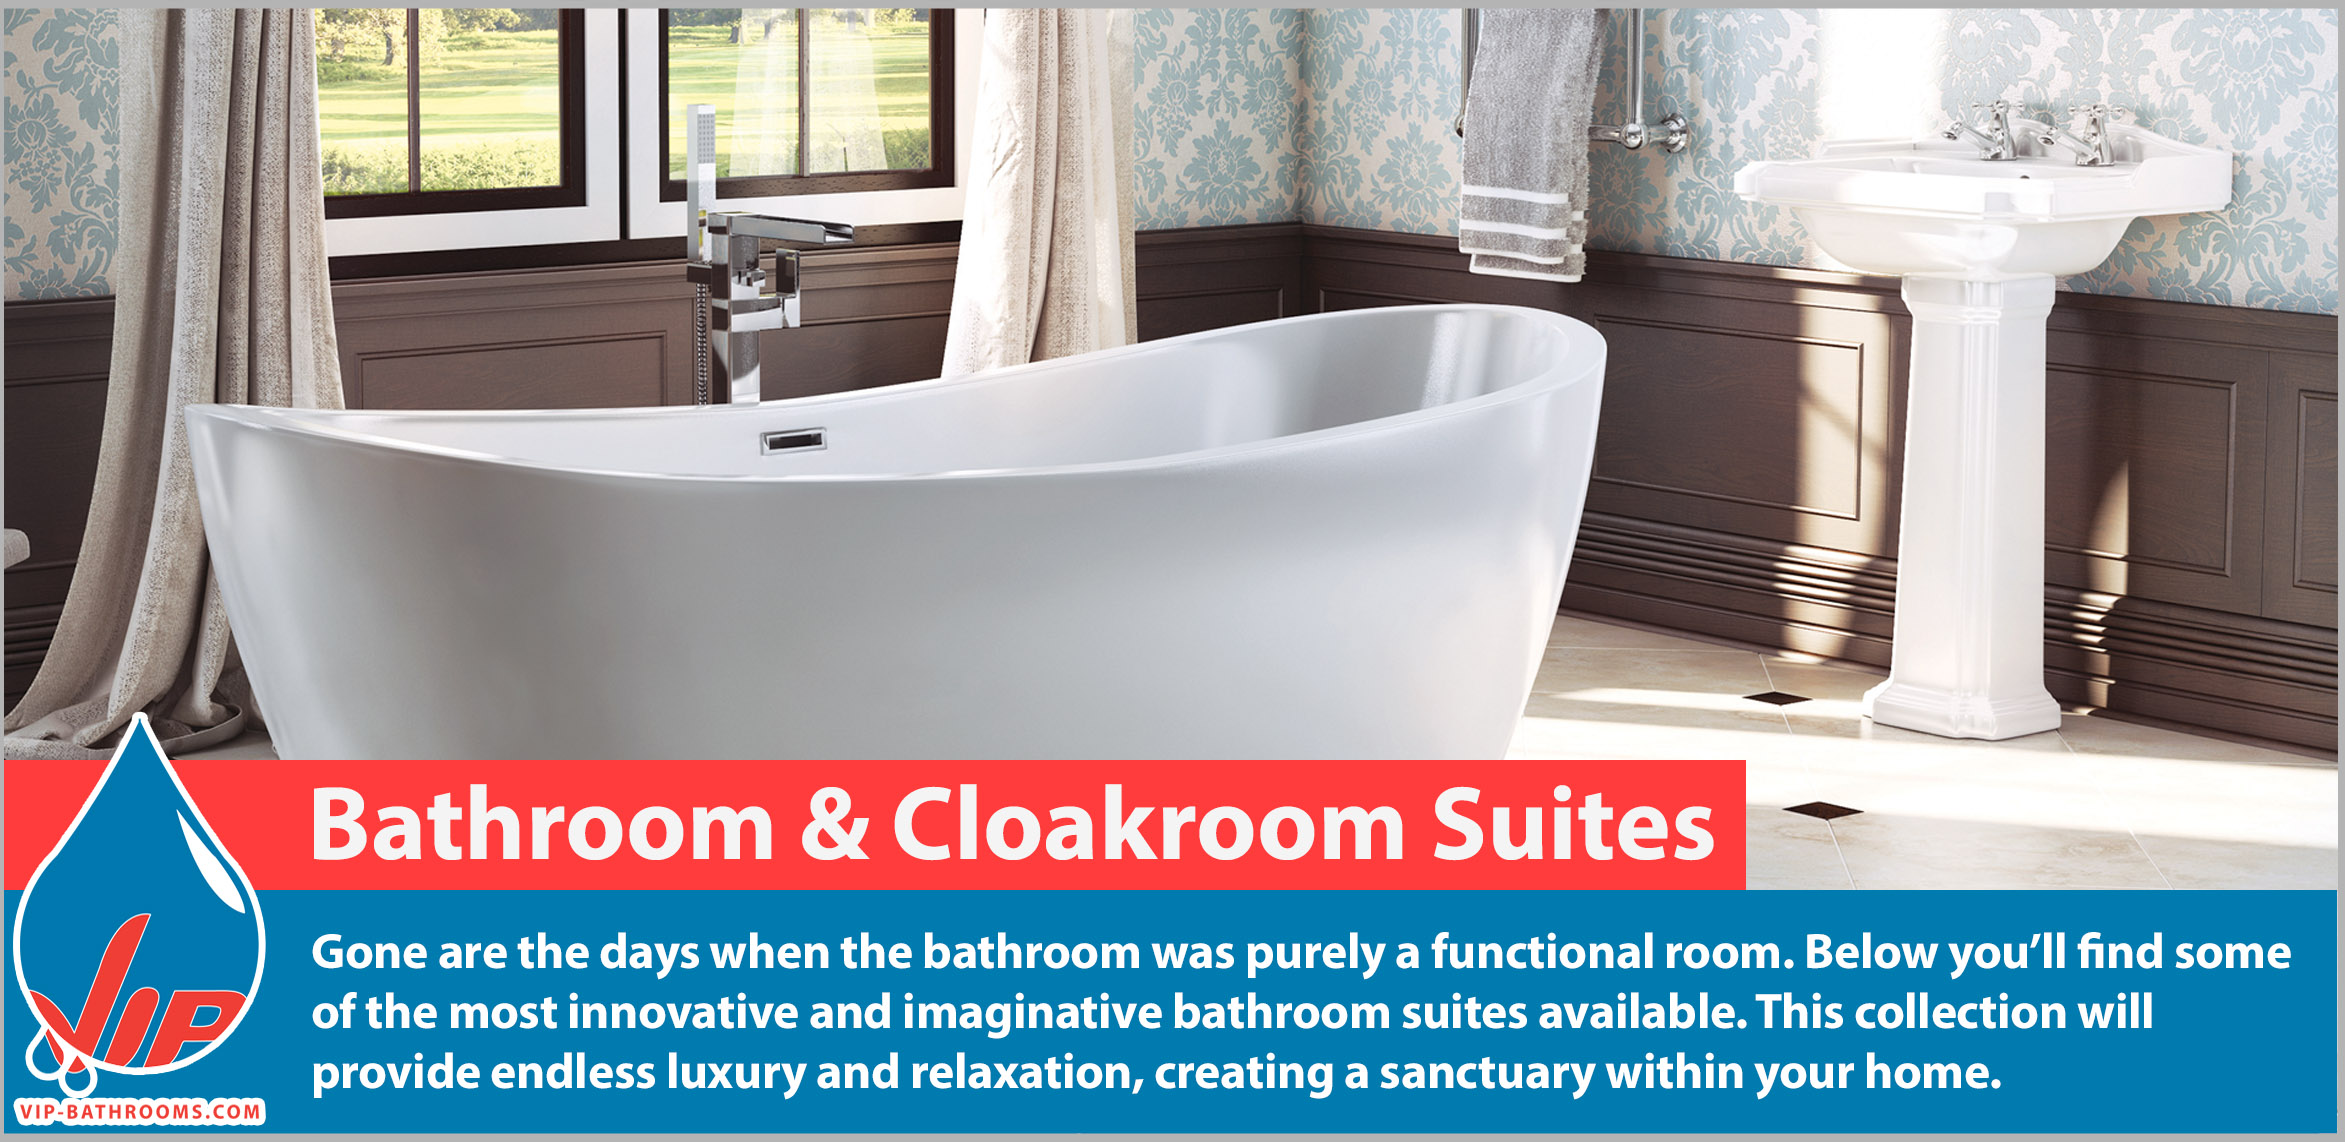 Truly luxurious bathroom suites by VIP Bathrooms. Gone are the days when the bathroom was purely a functional room. Below you'll find some of the most innovative and imaginative bathroom suites available. This collection will provide endless luxury and relaxation, creating a sanctuary within your home.